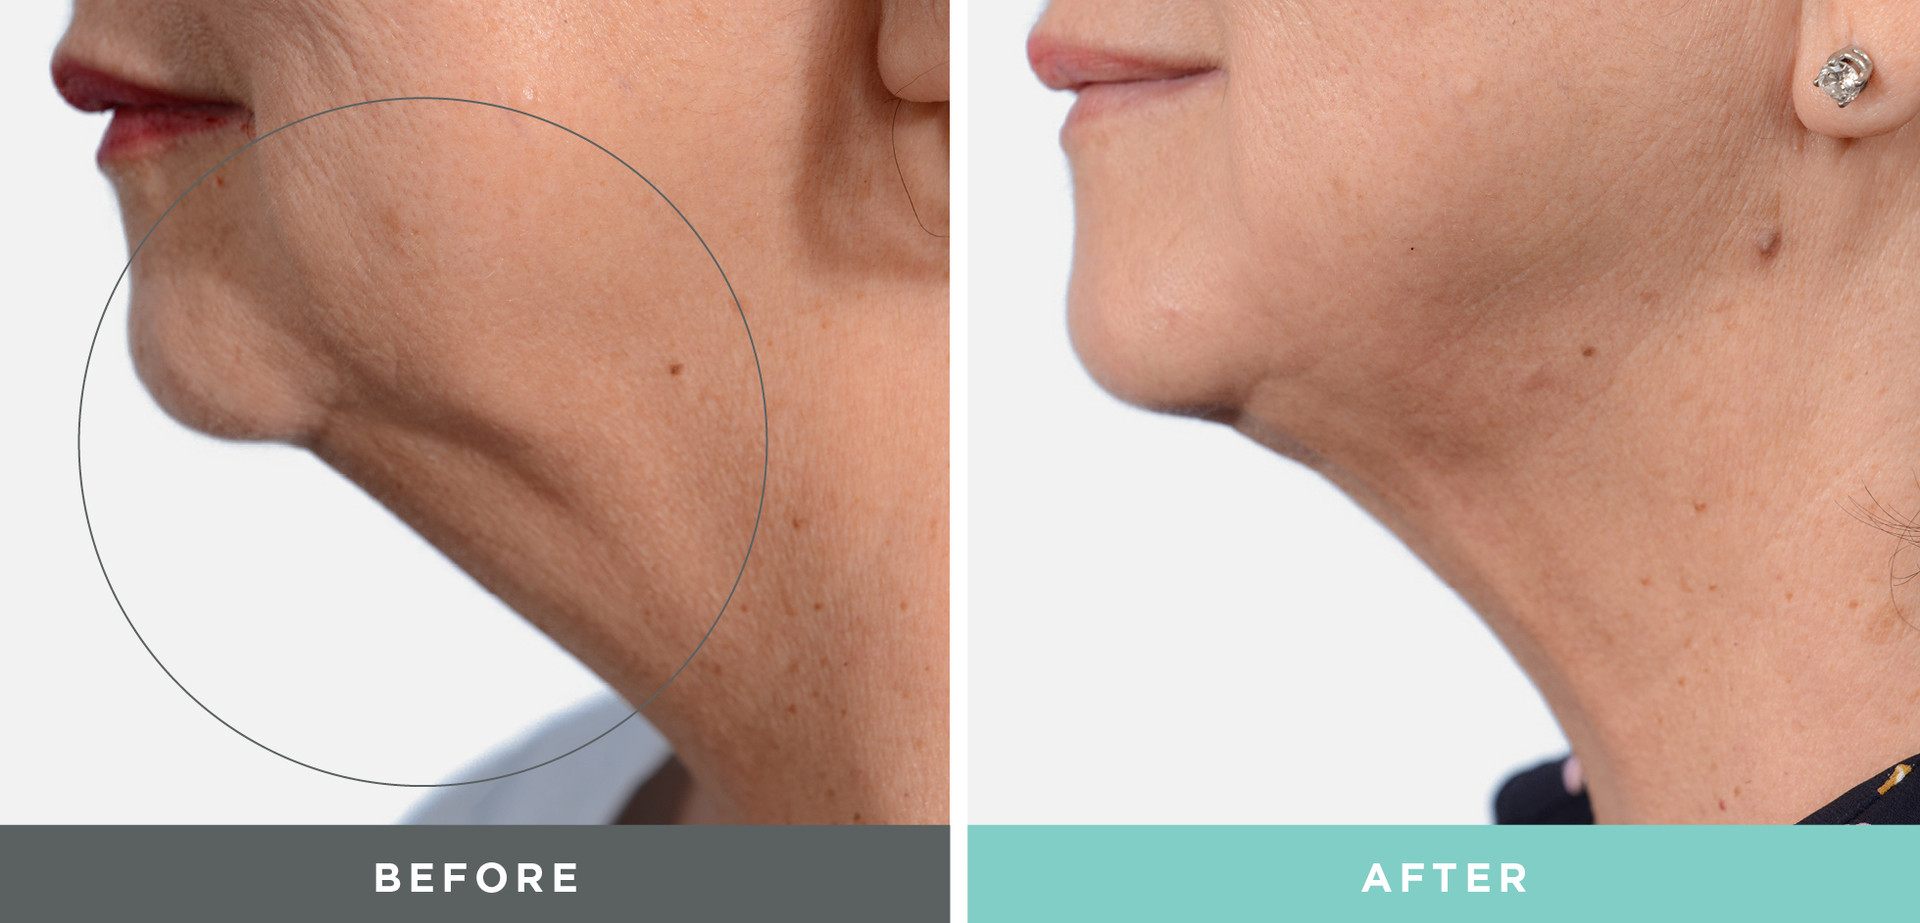 A Before and After skin tightening treatment